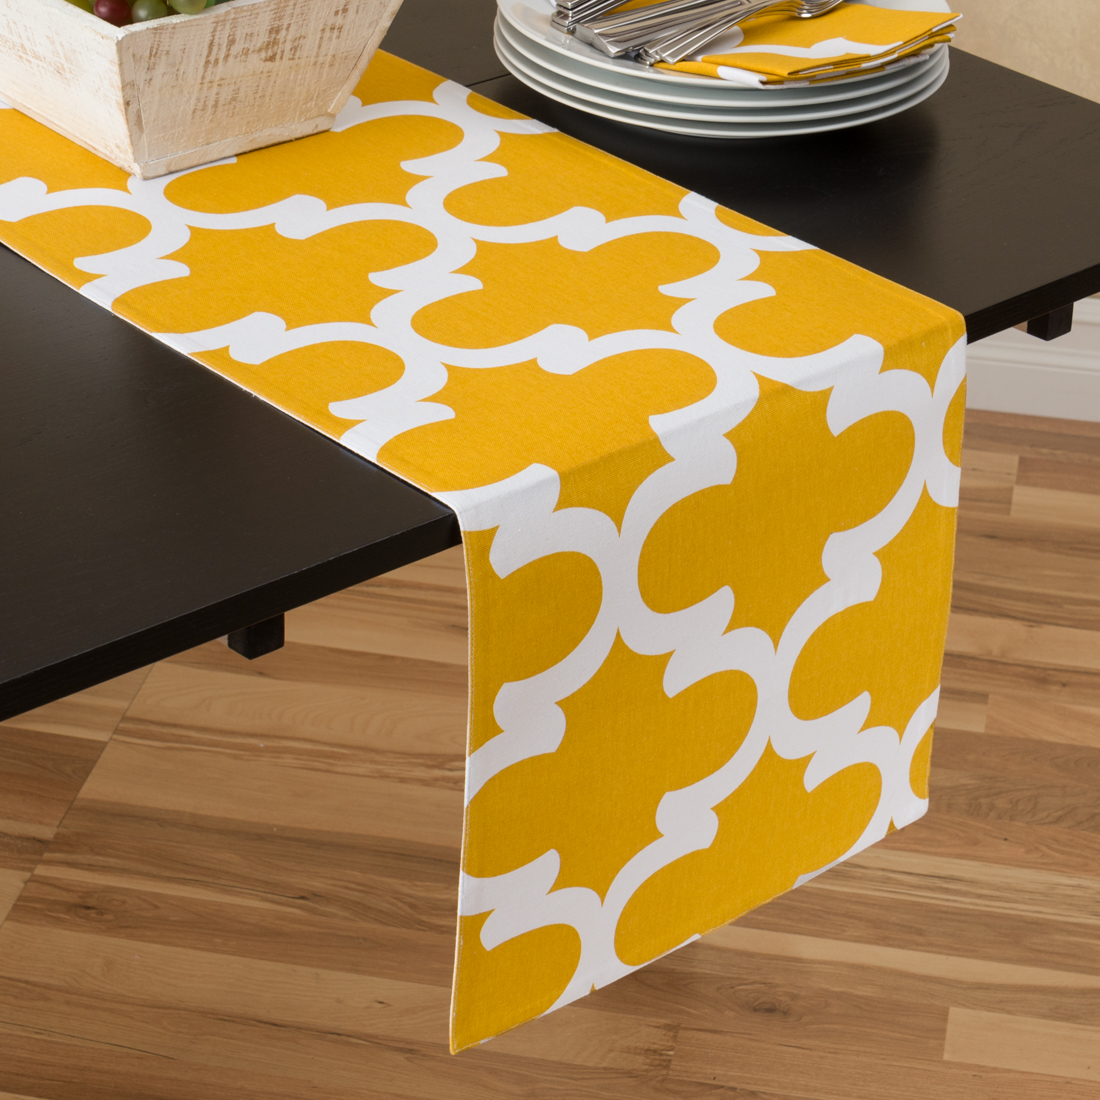 13 x 90 in. Mustard Yellow & White Trellis Table Runner by